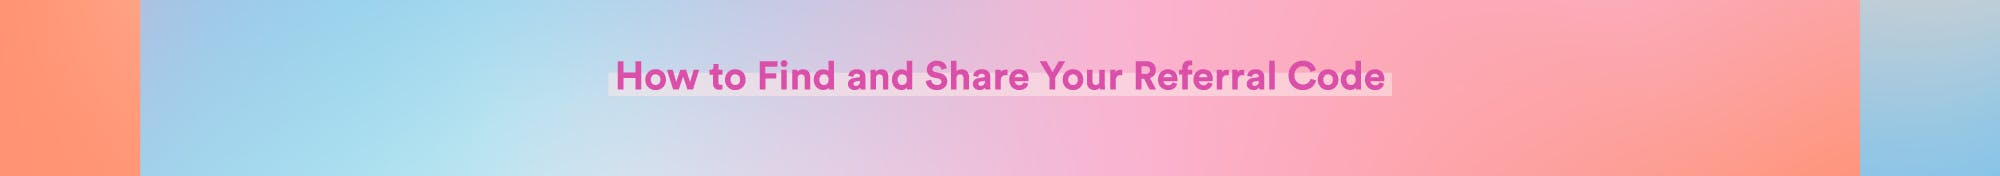 How to find and share your referral code